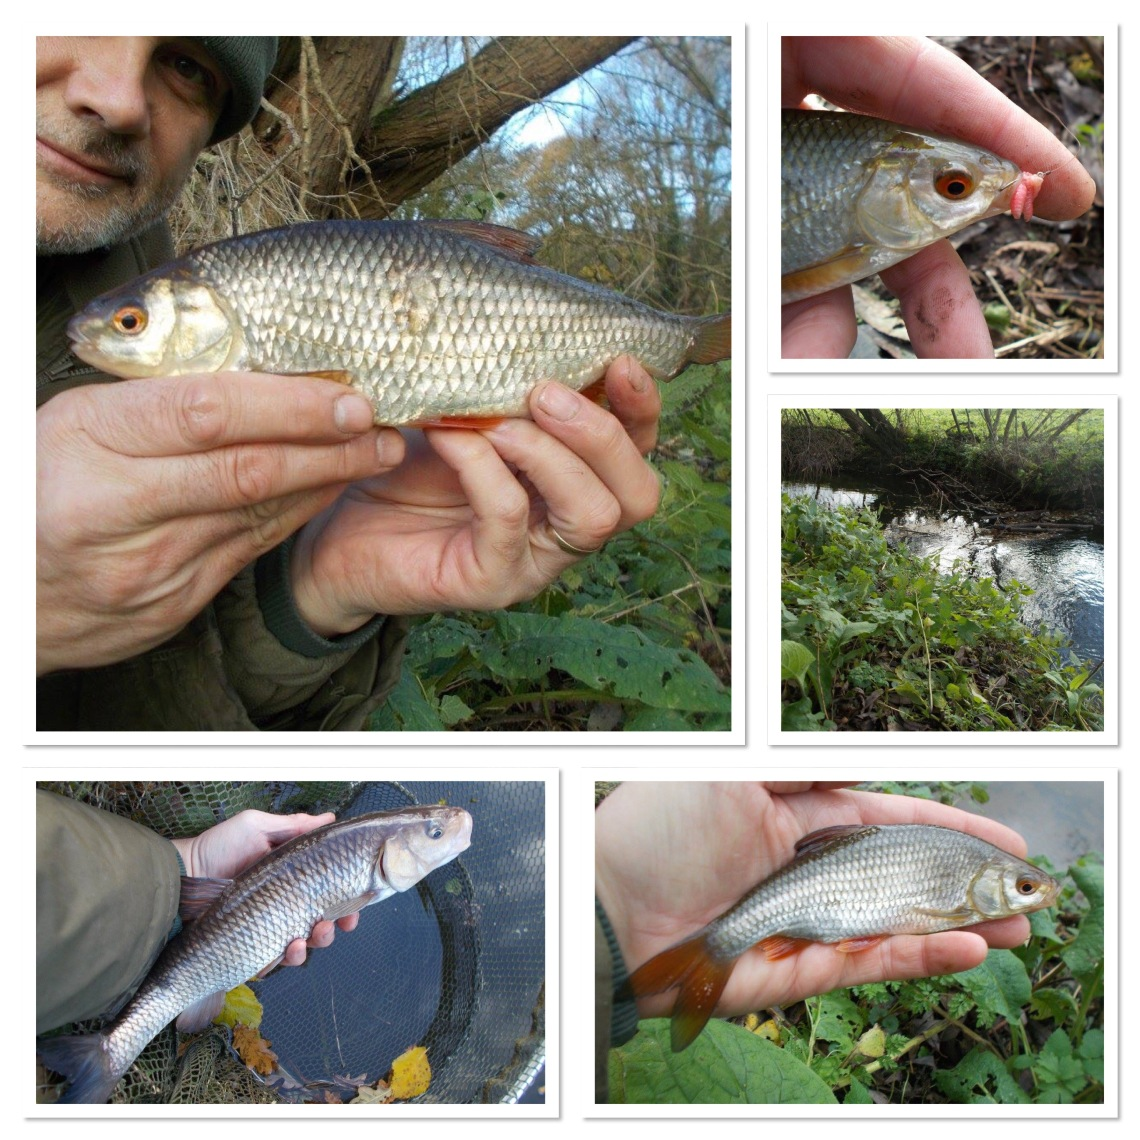 Roach from the brook, chub from the canal